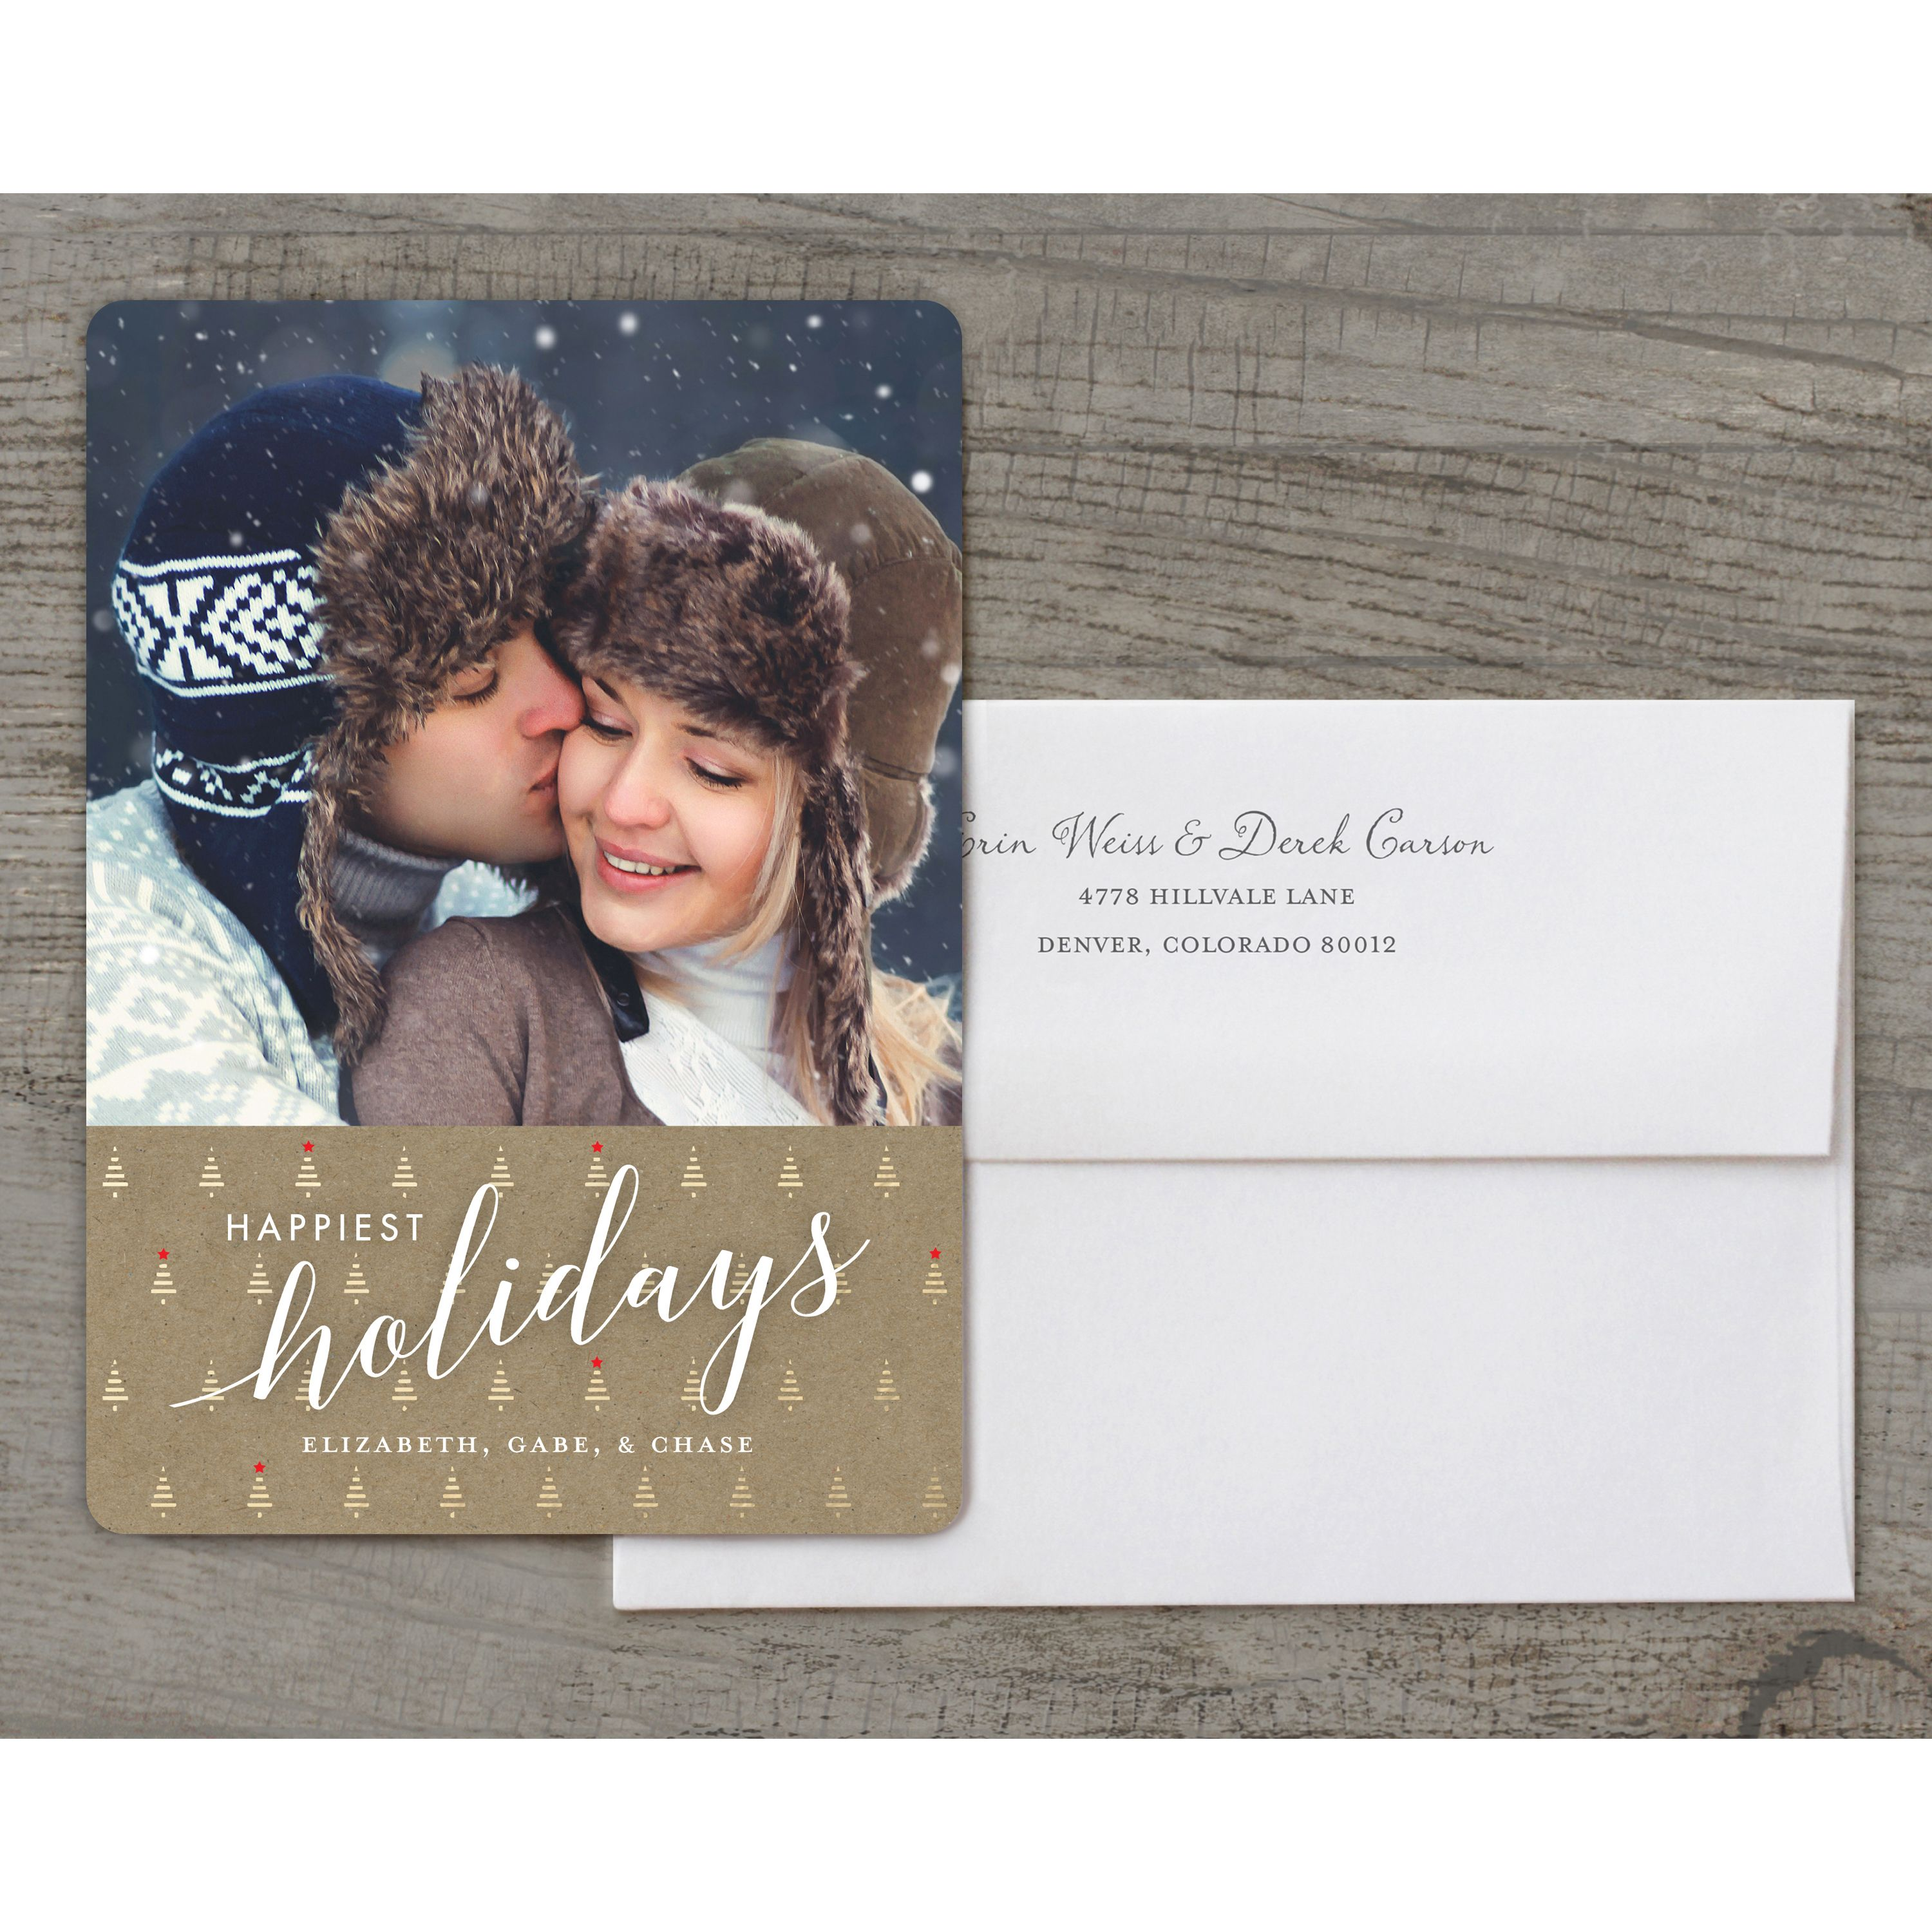 Happiest Holiday Trees - Deluxe 5x7 Personalized Holiday Holiday Card